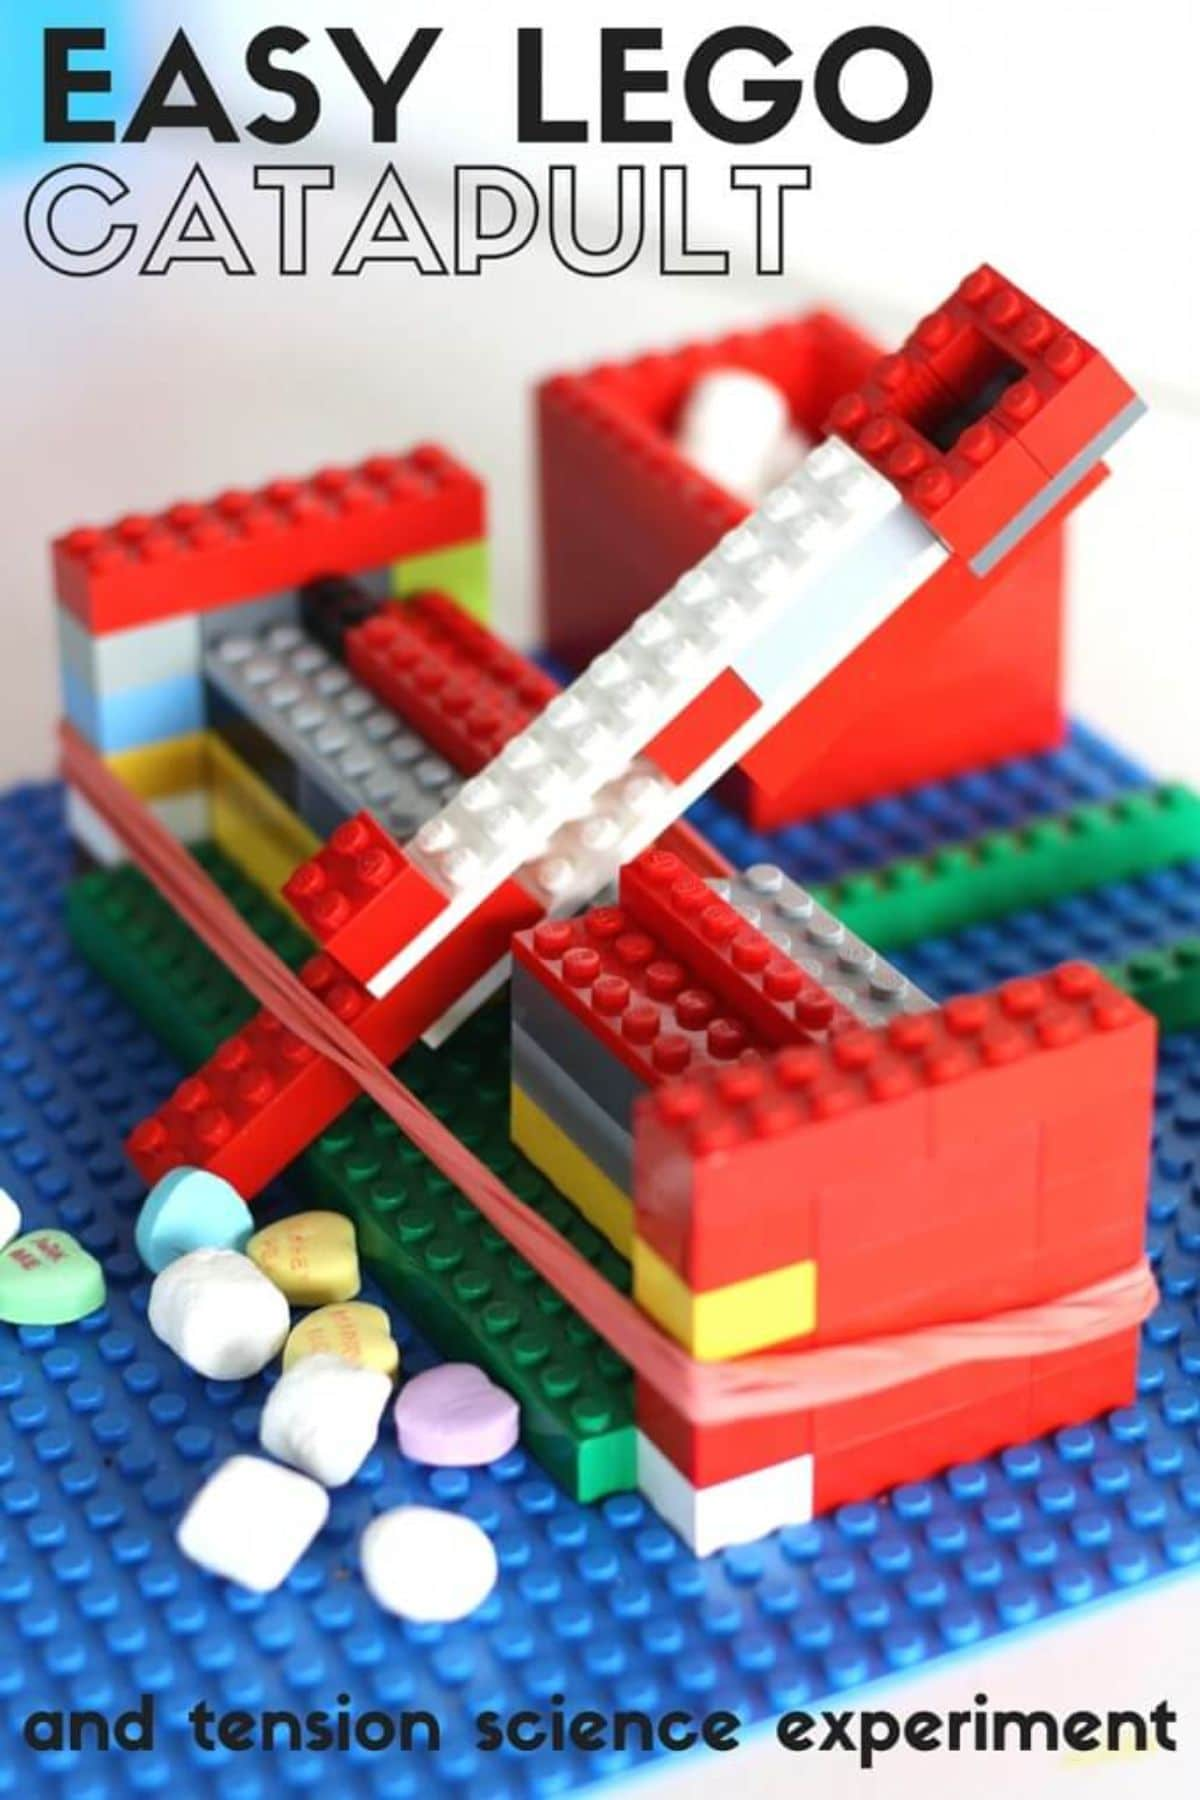 """The text reads """"Easy LEGO catapult and tension science experiment"""" The image is of a catapult made of lego with sweets at the front"""